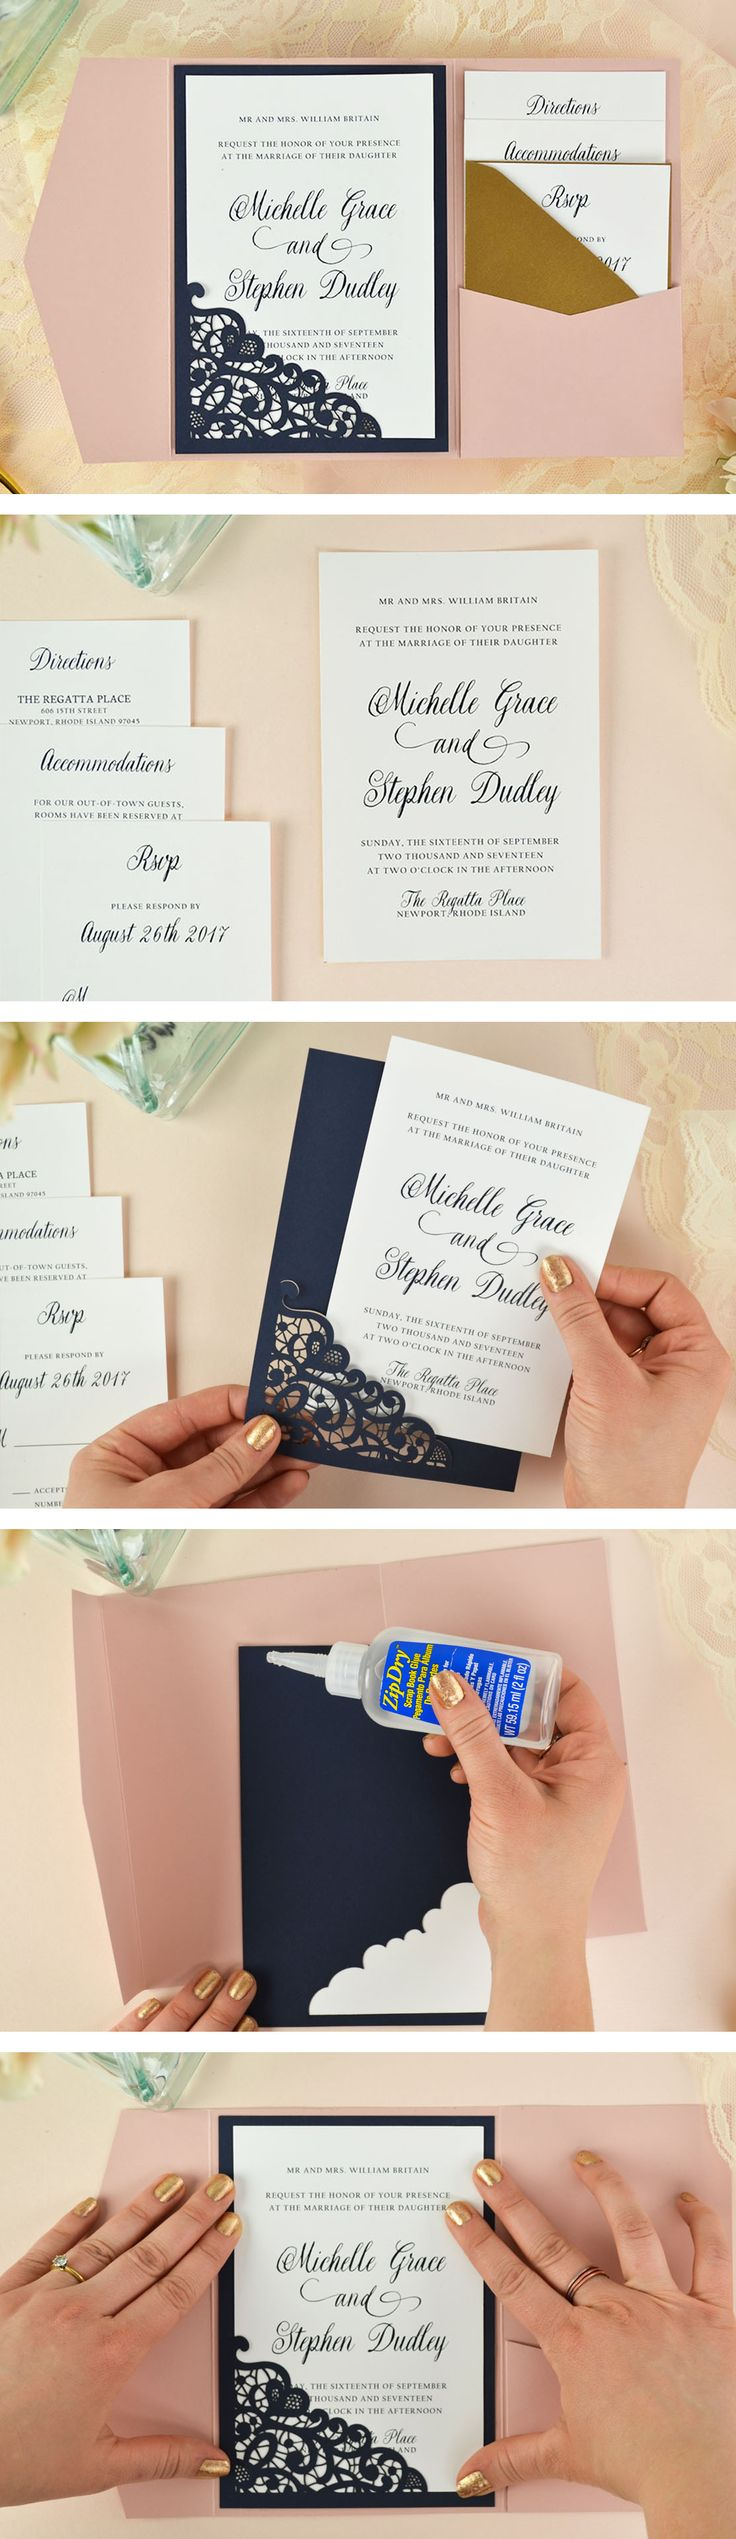 DIY Laser Cut Wedding Invitations | It's so easy to DIY this lace laser pocket invitation from Cards and Pockets. Perfect for an elegant wedding. Click through for a tutorial and this free wedding invitation template!